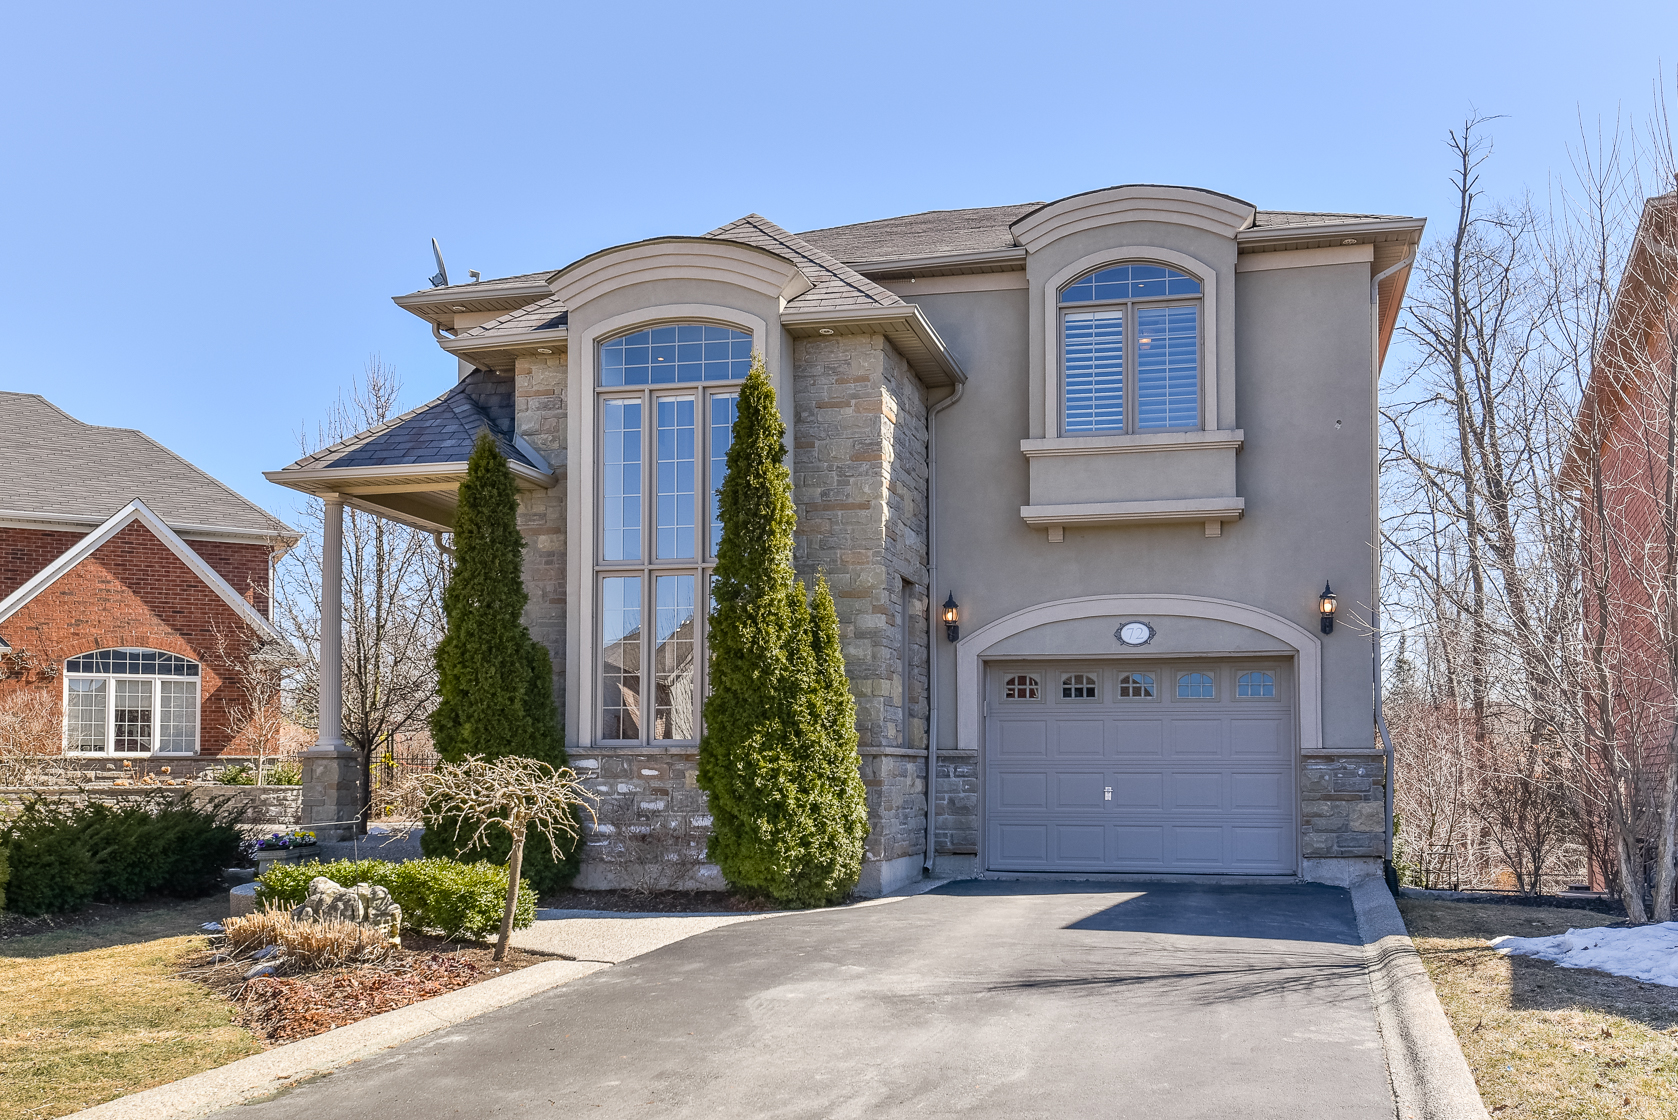 Main Photo: 72 Commando Court in Hamilton: Waterdown House (2-Storey) for sale : MLS®# X4078170